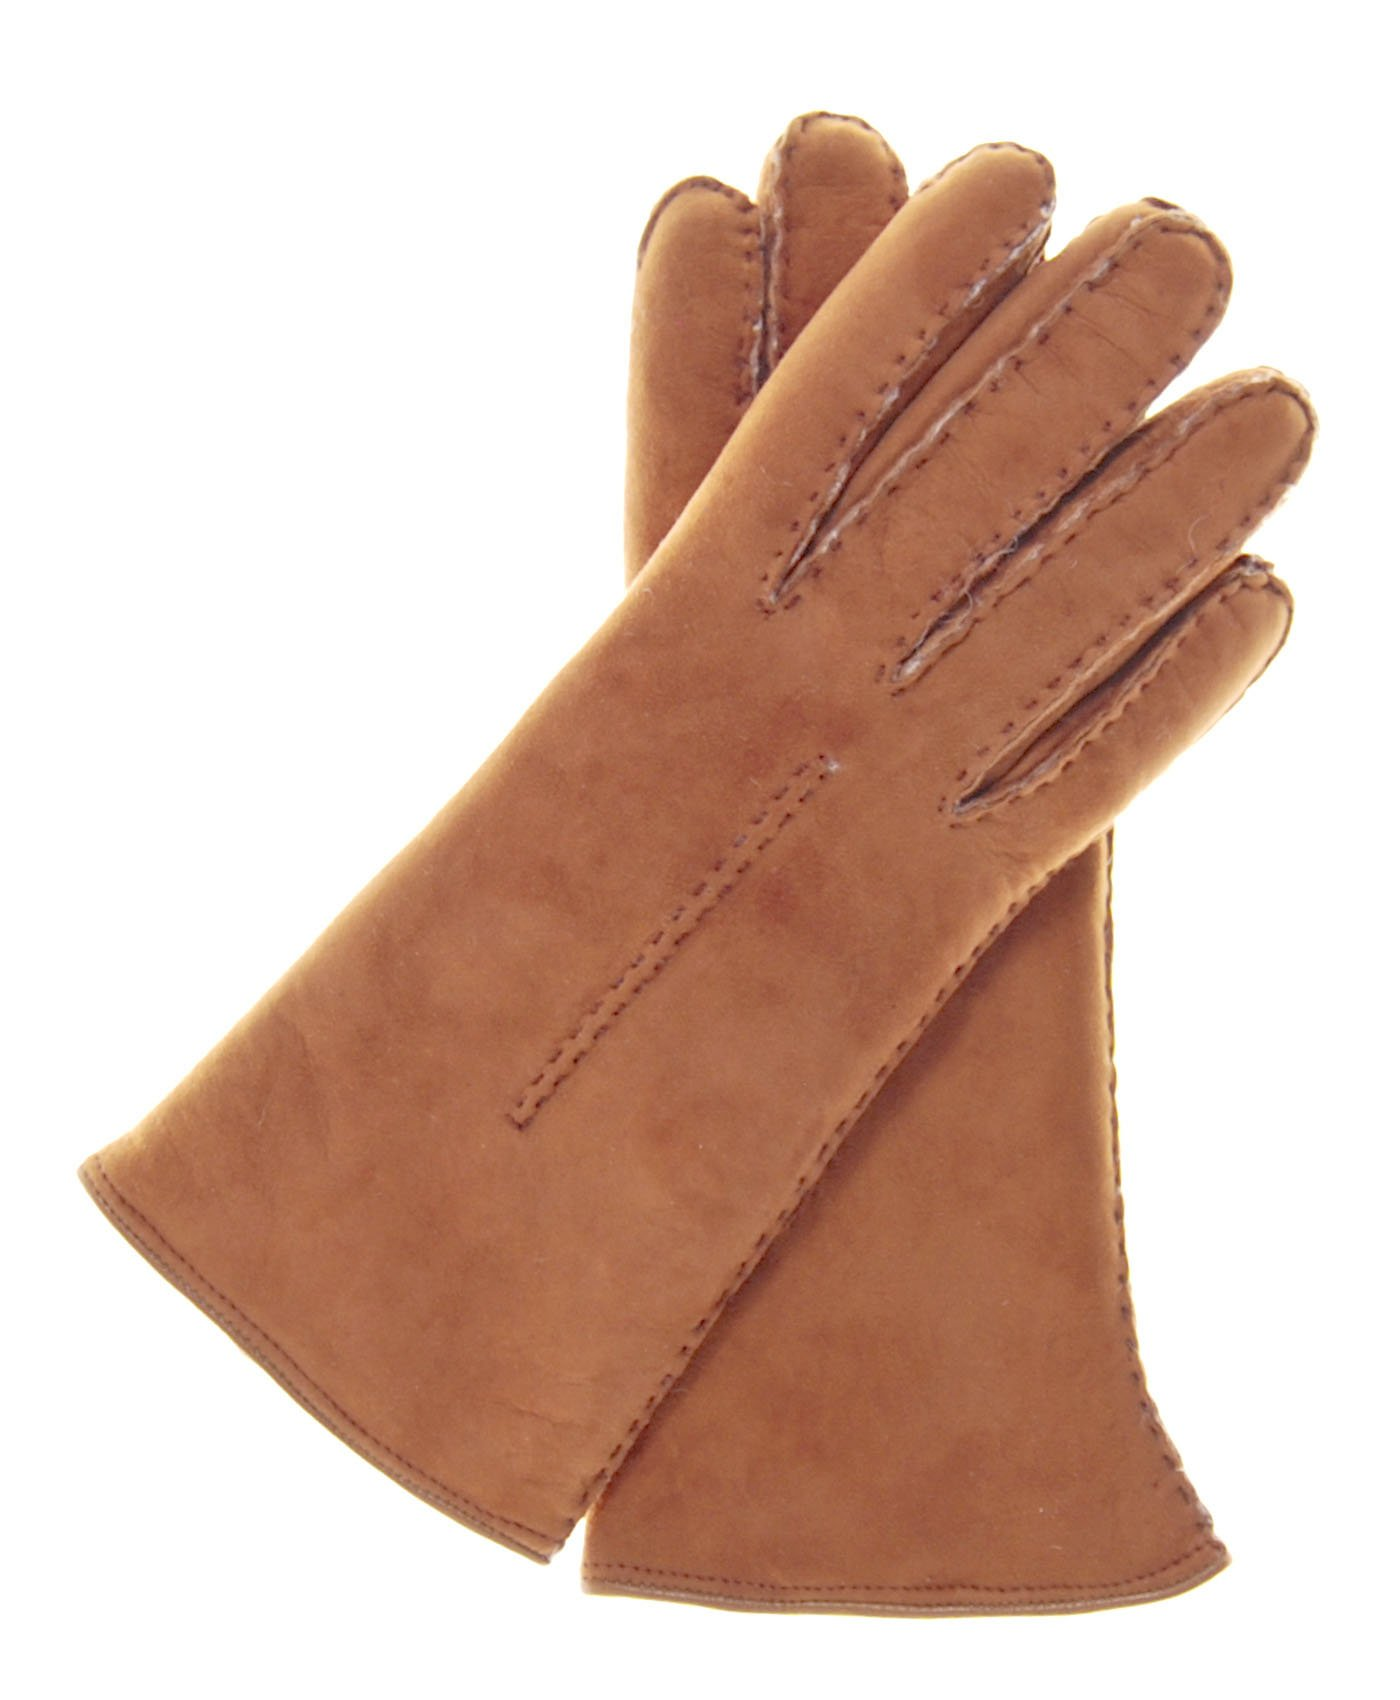 Fratelli Orsini Women's Handsewn Sueded Lamb Shearling Gloves Size 8 Color Saddle